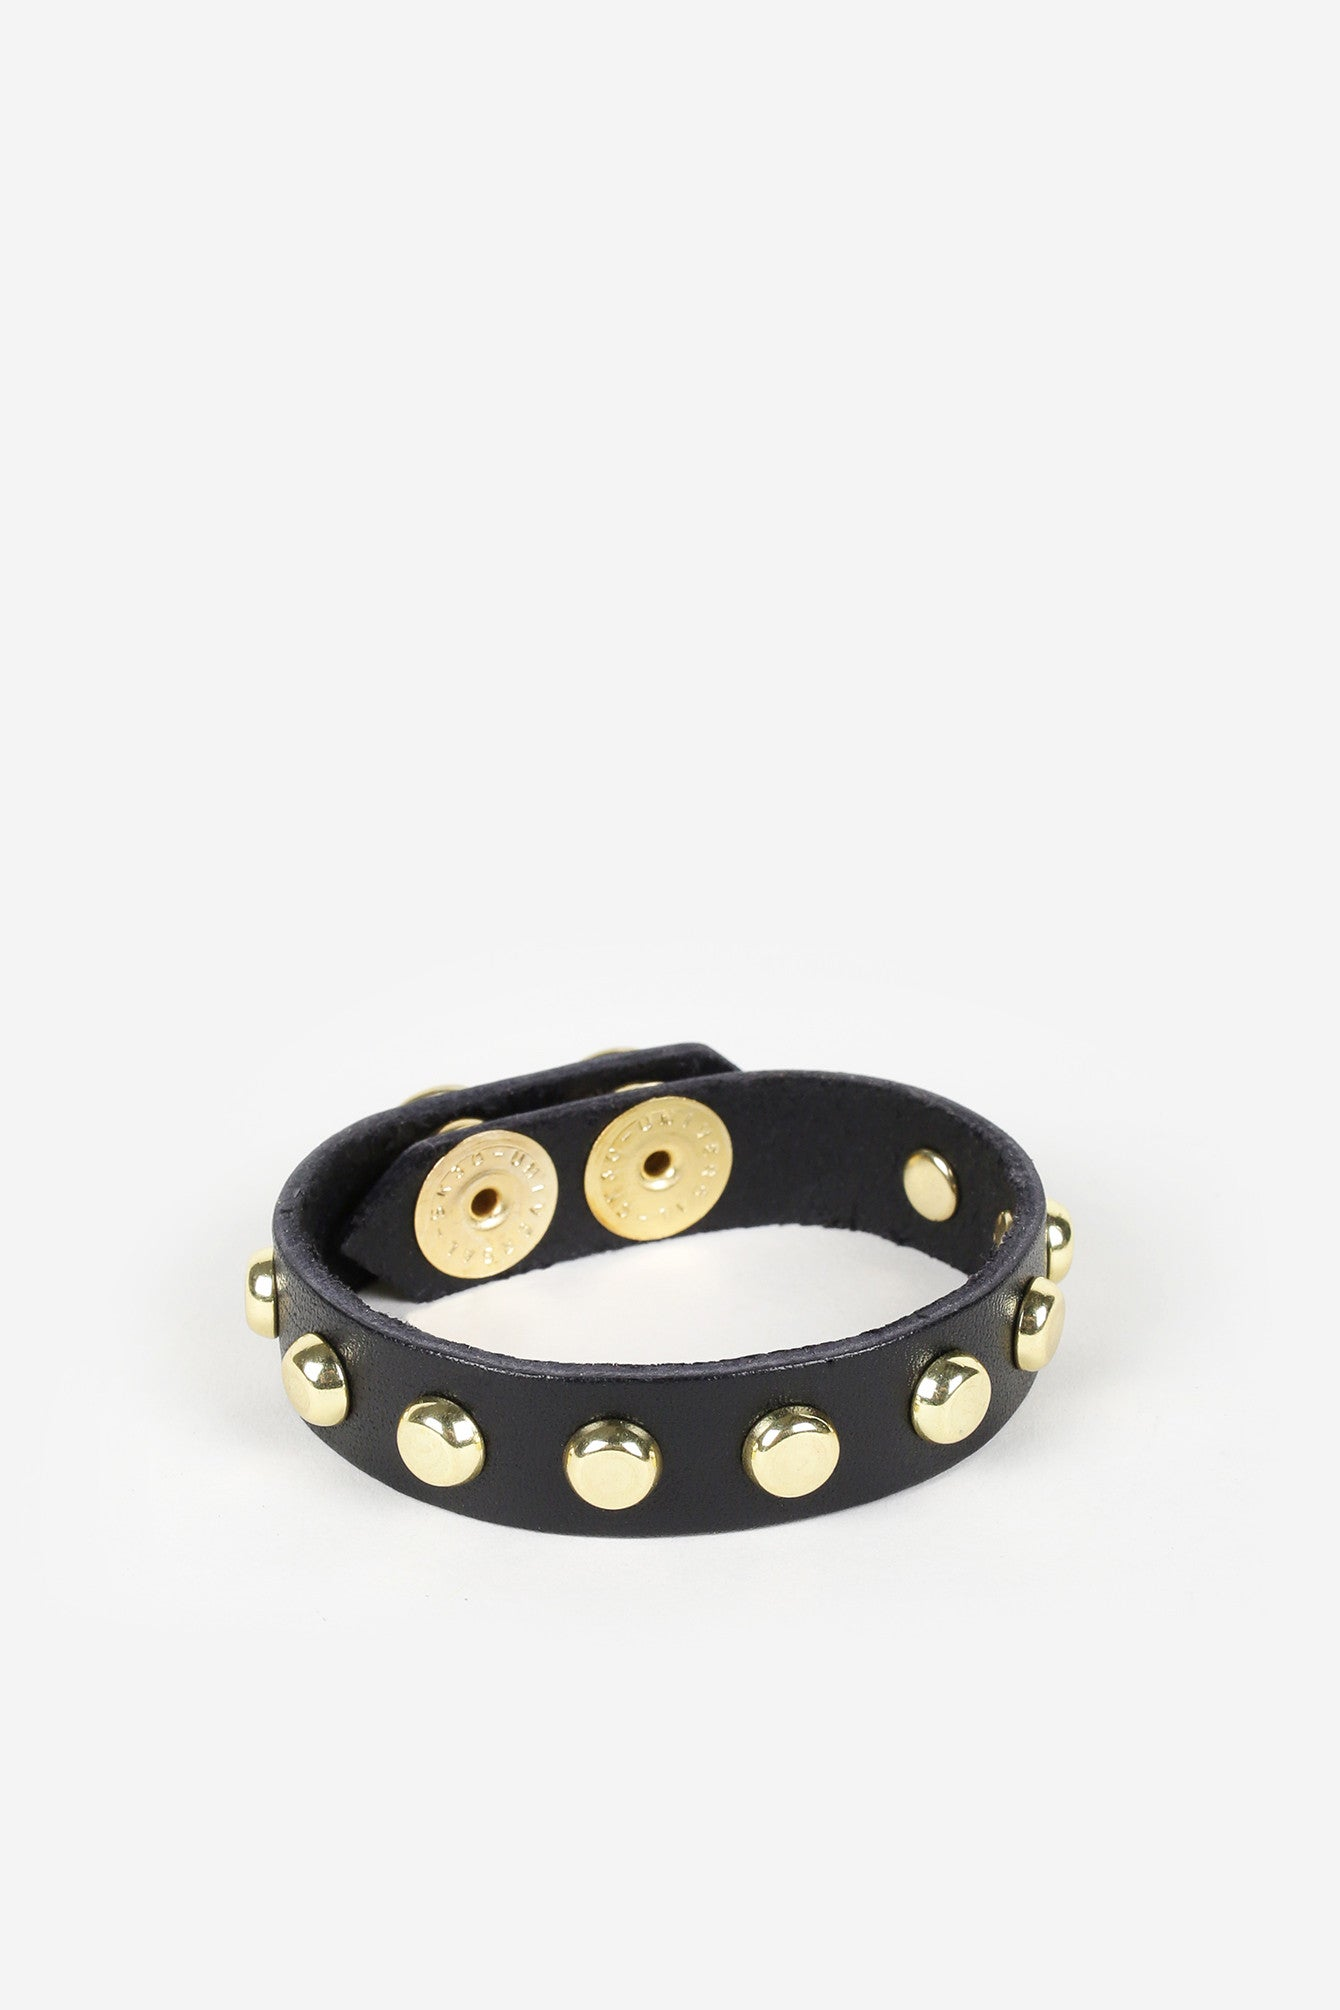 Sheena Studded Leather Bracelet - JAKIMAC  - 1